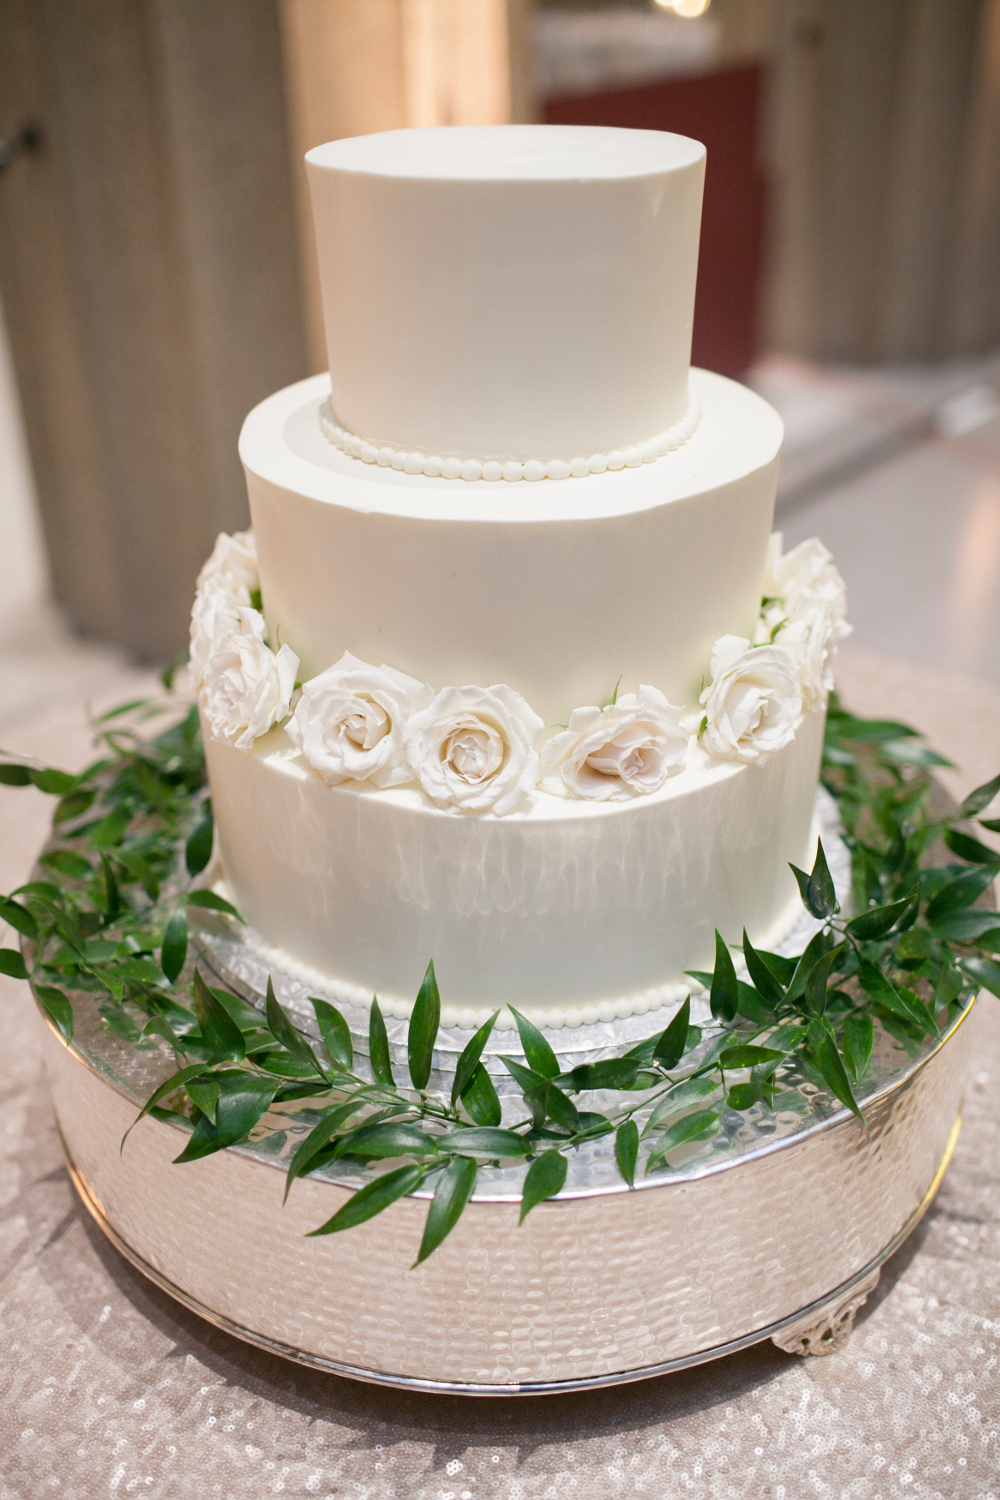 White 3 Tier Cakes With Roses And Greenery Hannah Elaine Photography